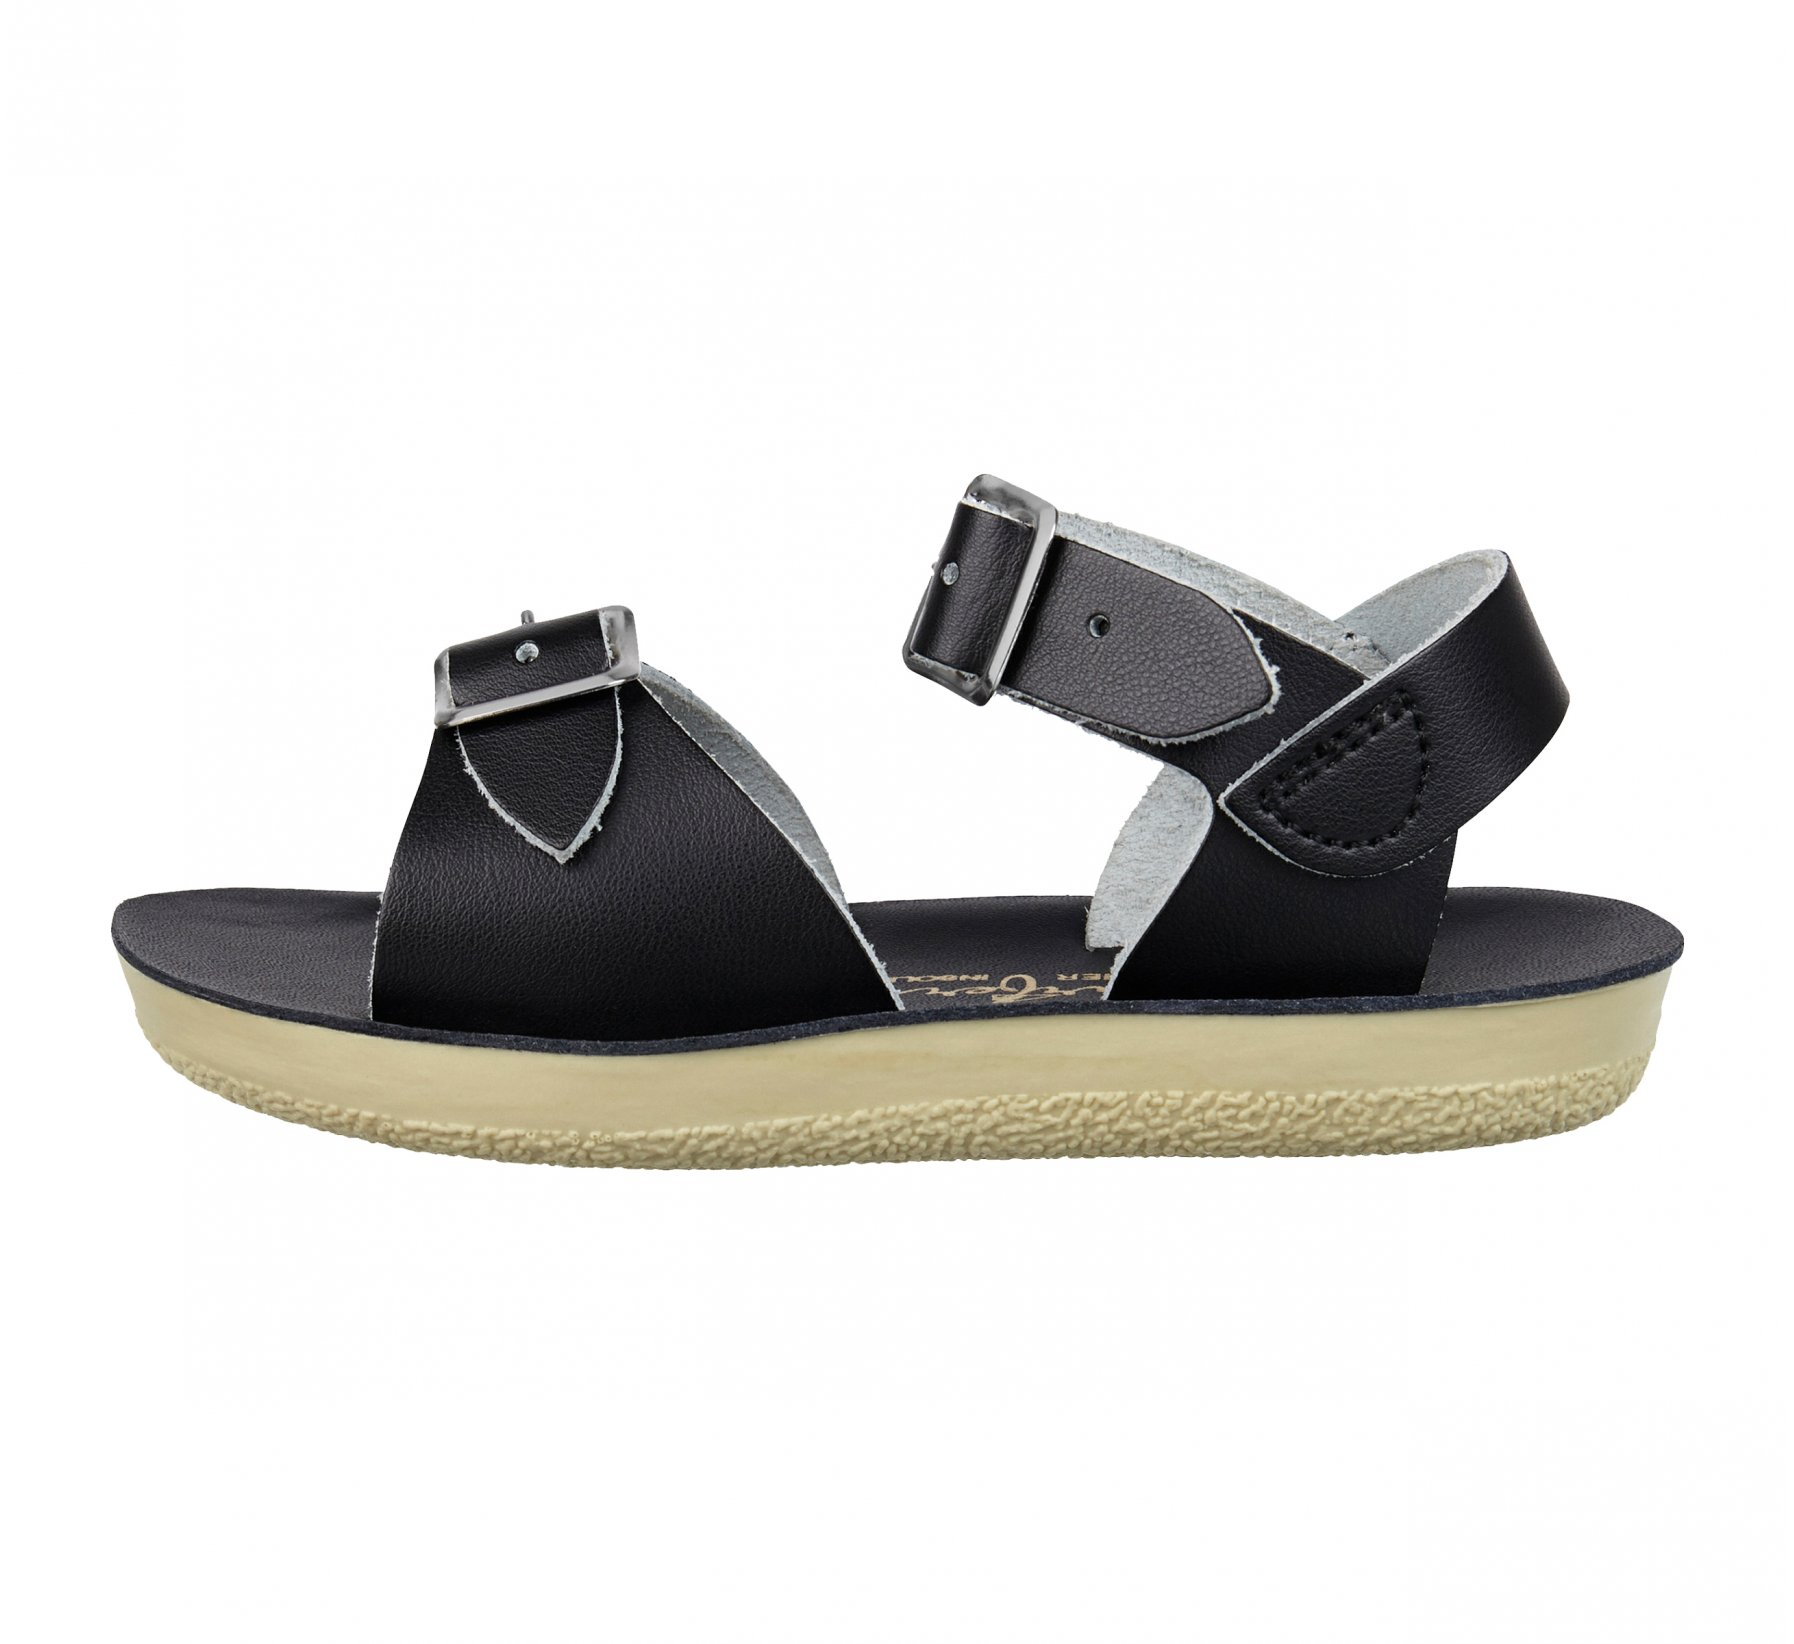 Surfer in Schwarz - Salt Water Sandals